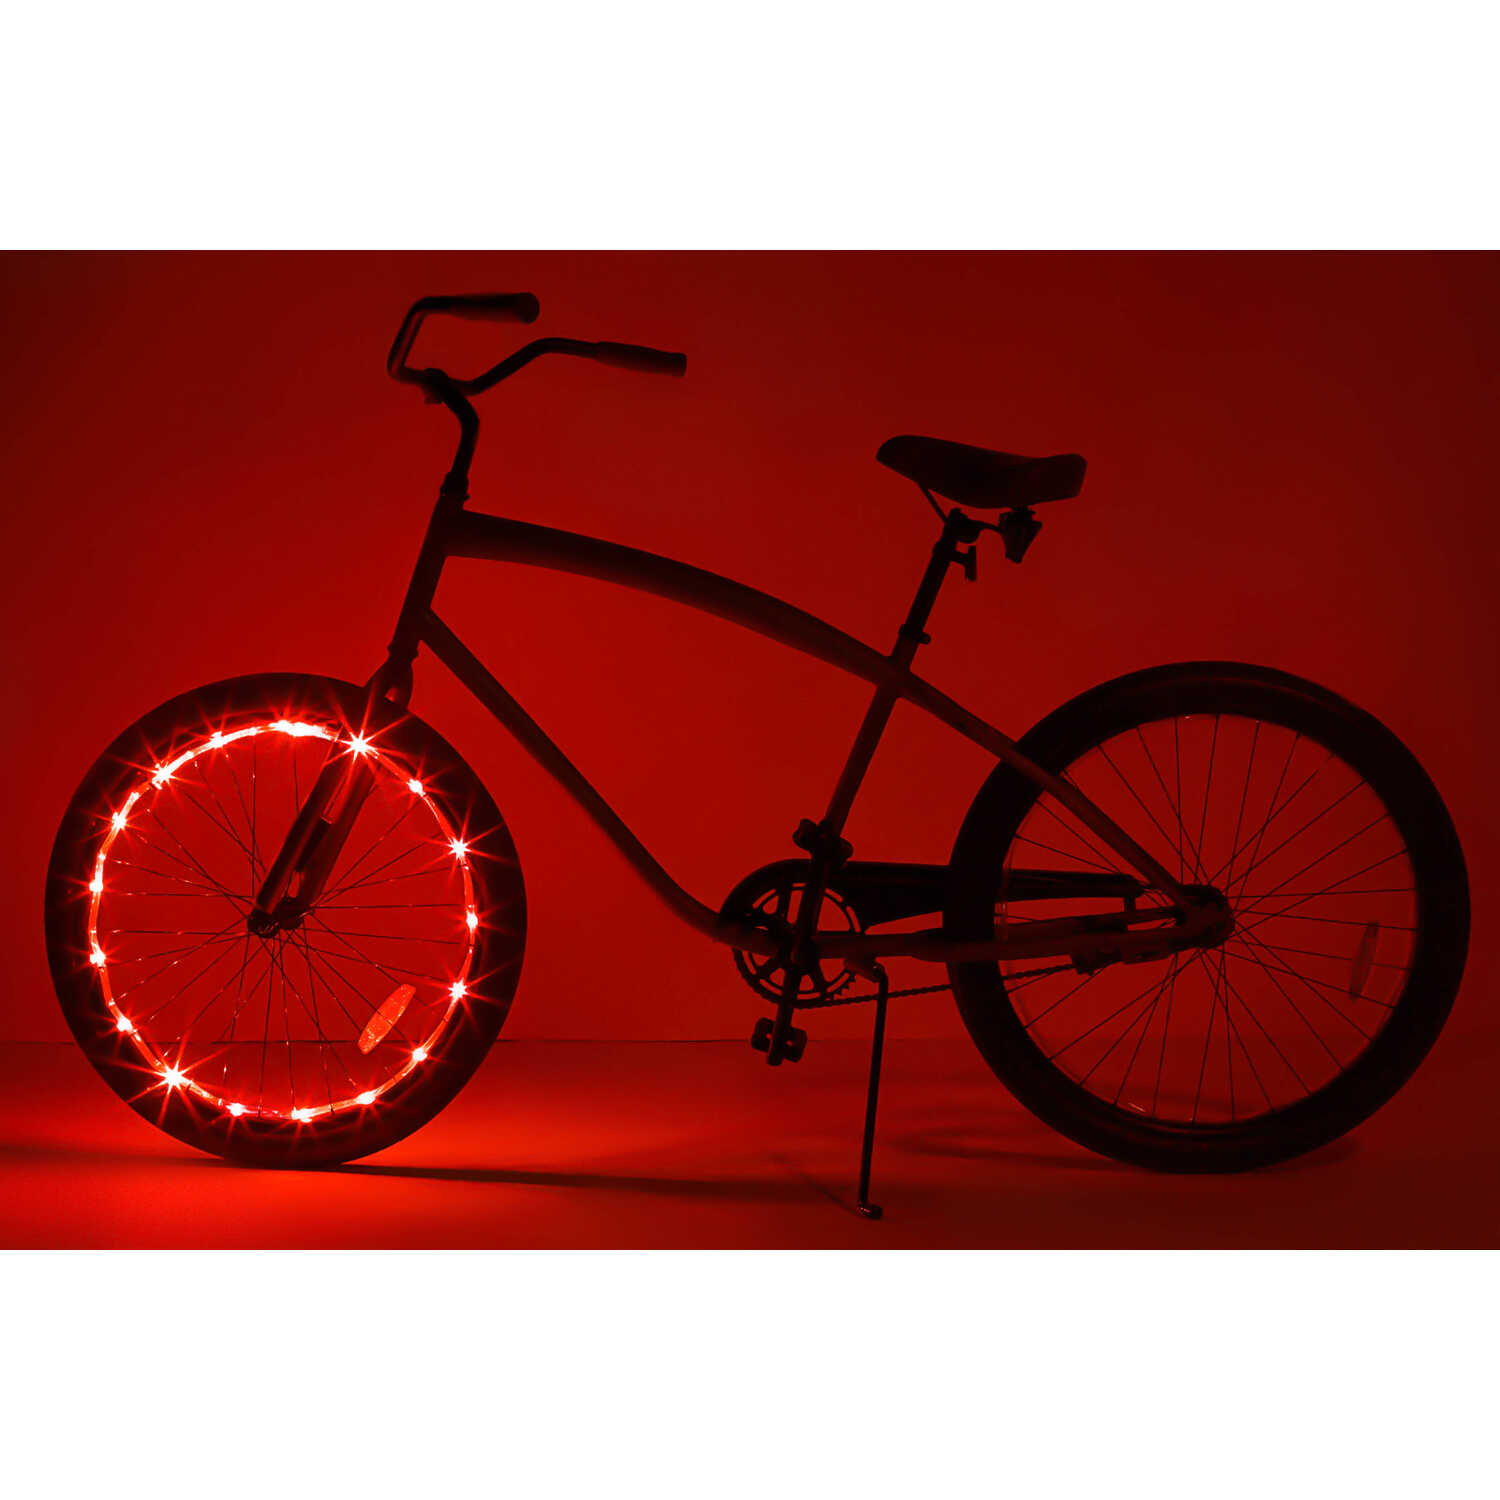 Brightz Ltd.  WheelBrightz  LED Bicycle Light Kit  ABS Plastics/Polyurethane/Electronics  1 set